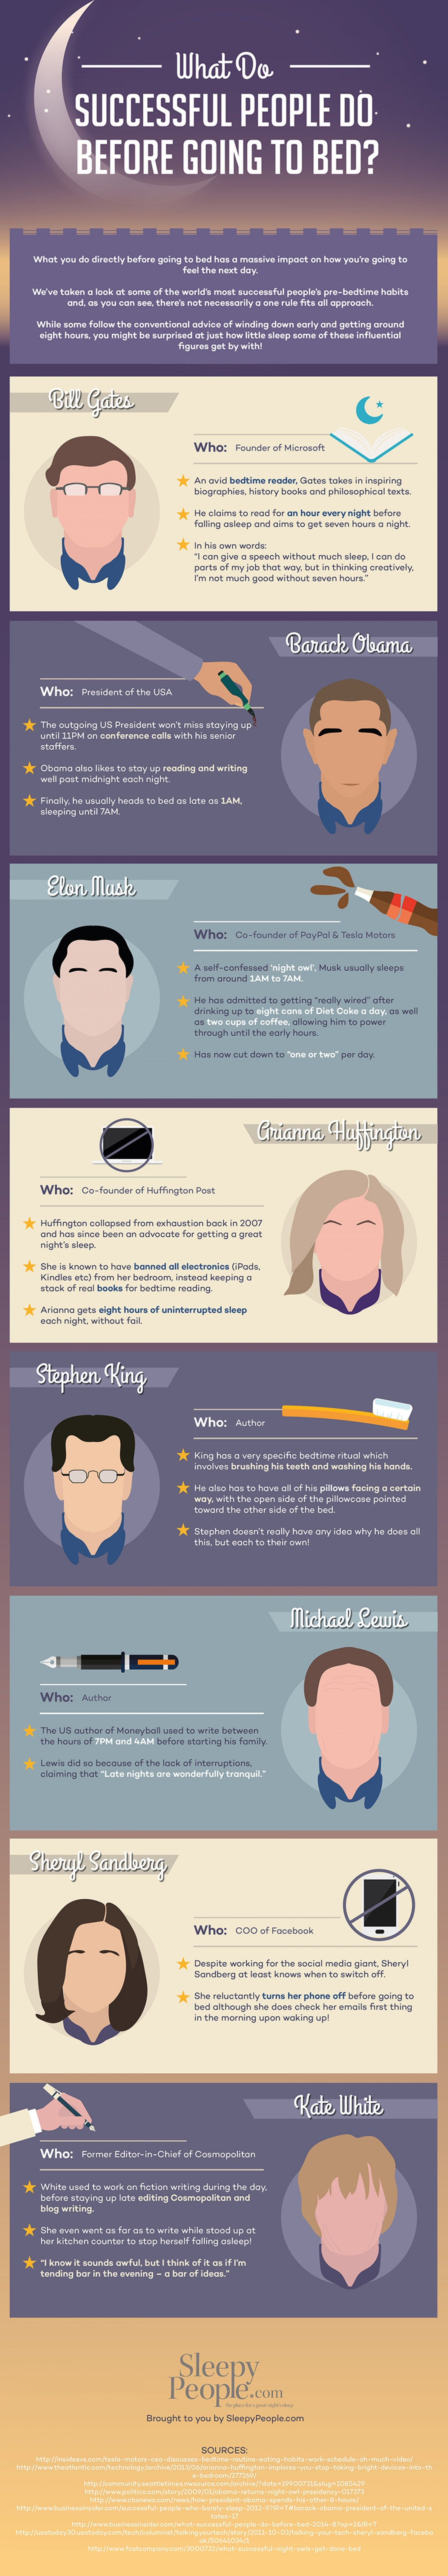 What Do Successful People Do Before Going To Bed? #Infographic